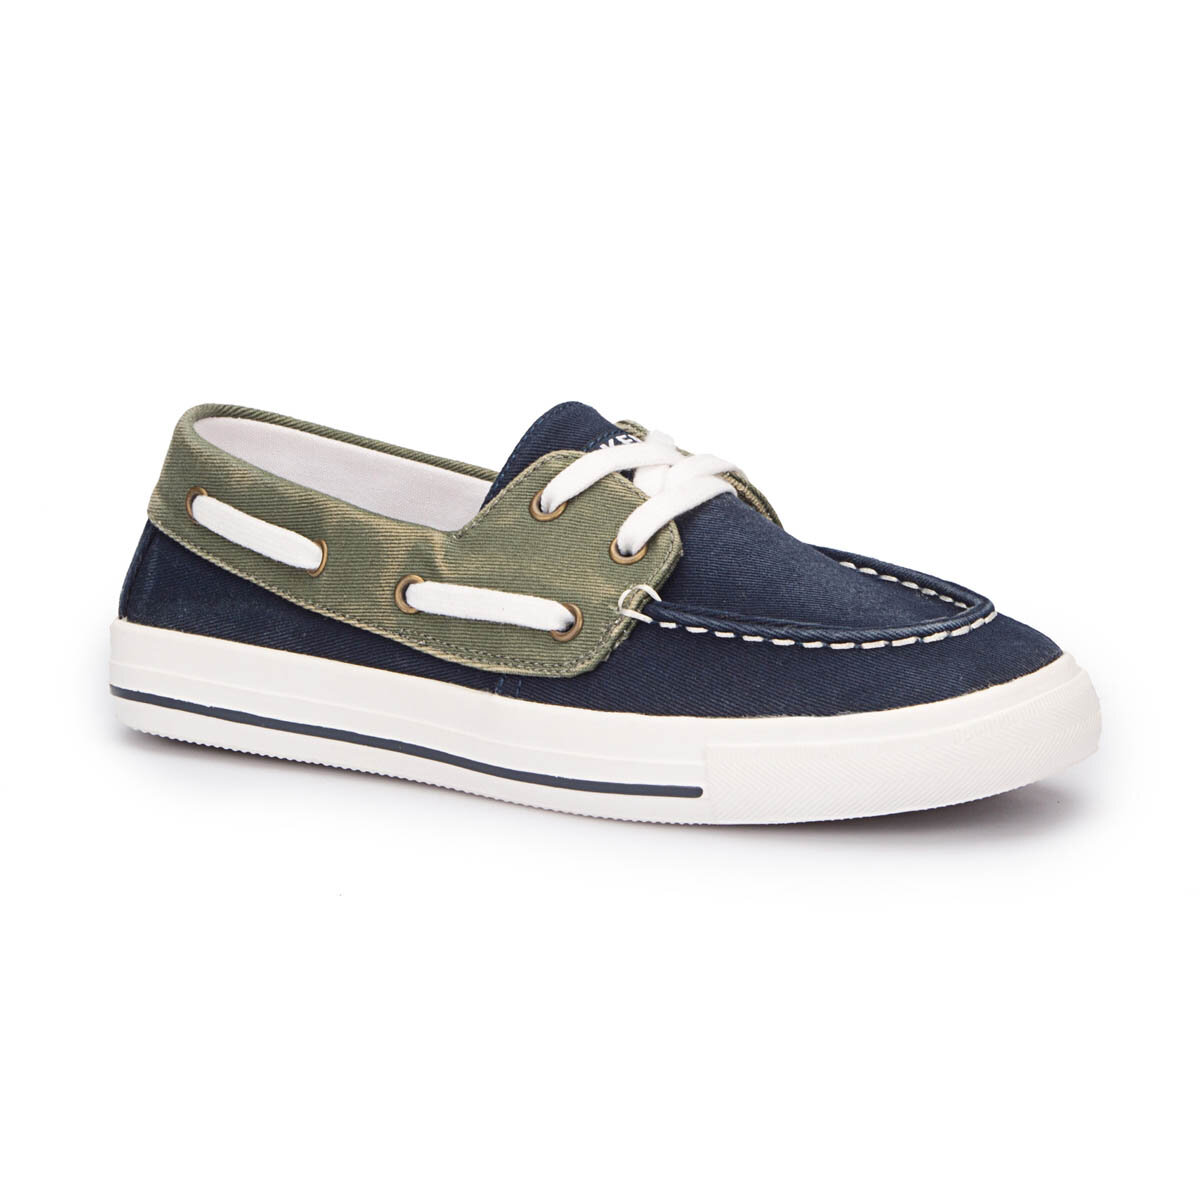 FLO 222610 Navy Blue Male Child By Marin Shoes Dockers The Gerle